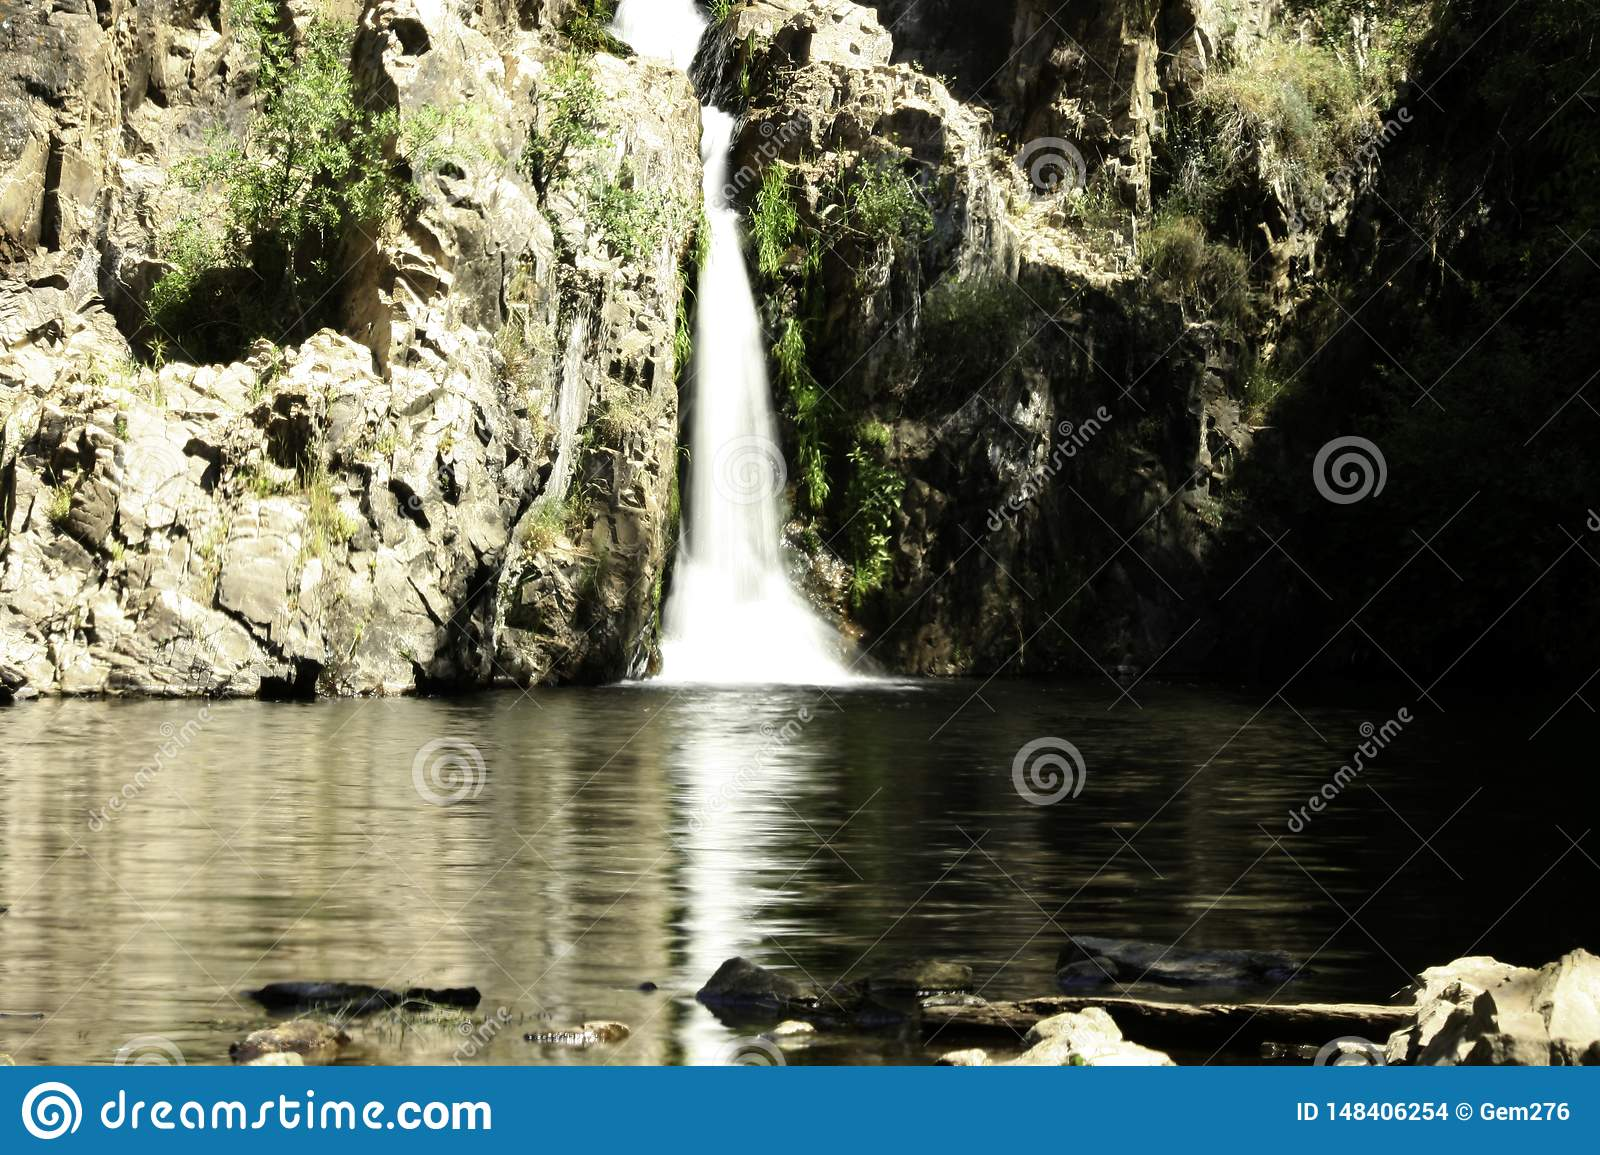 Hervidero waterfall with high contrast